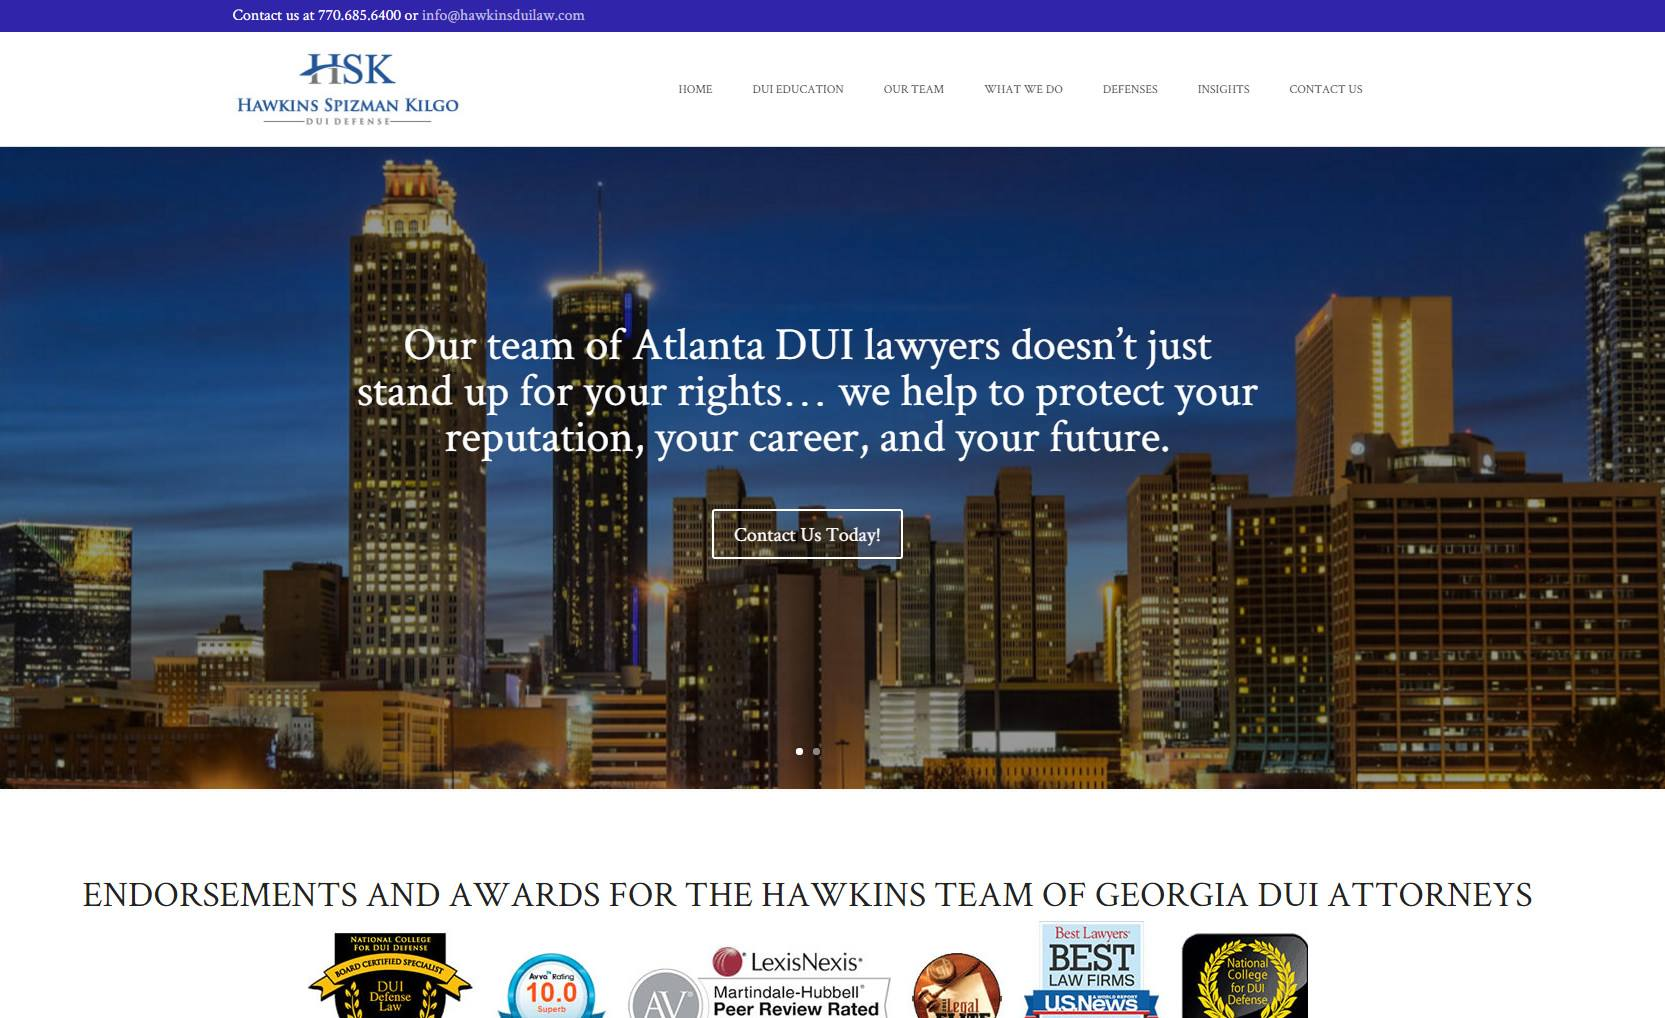 HSK Hawkins Spizman Kilgo DUI Defense Attorneys Atlanta GA